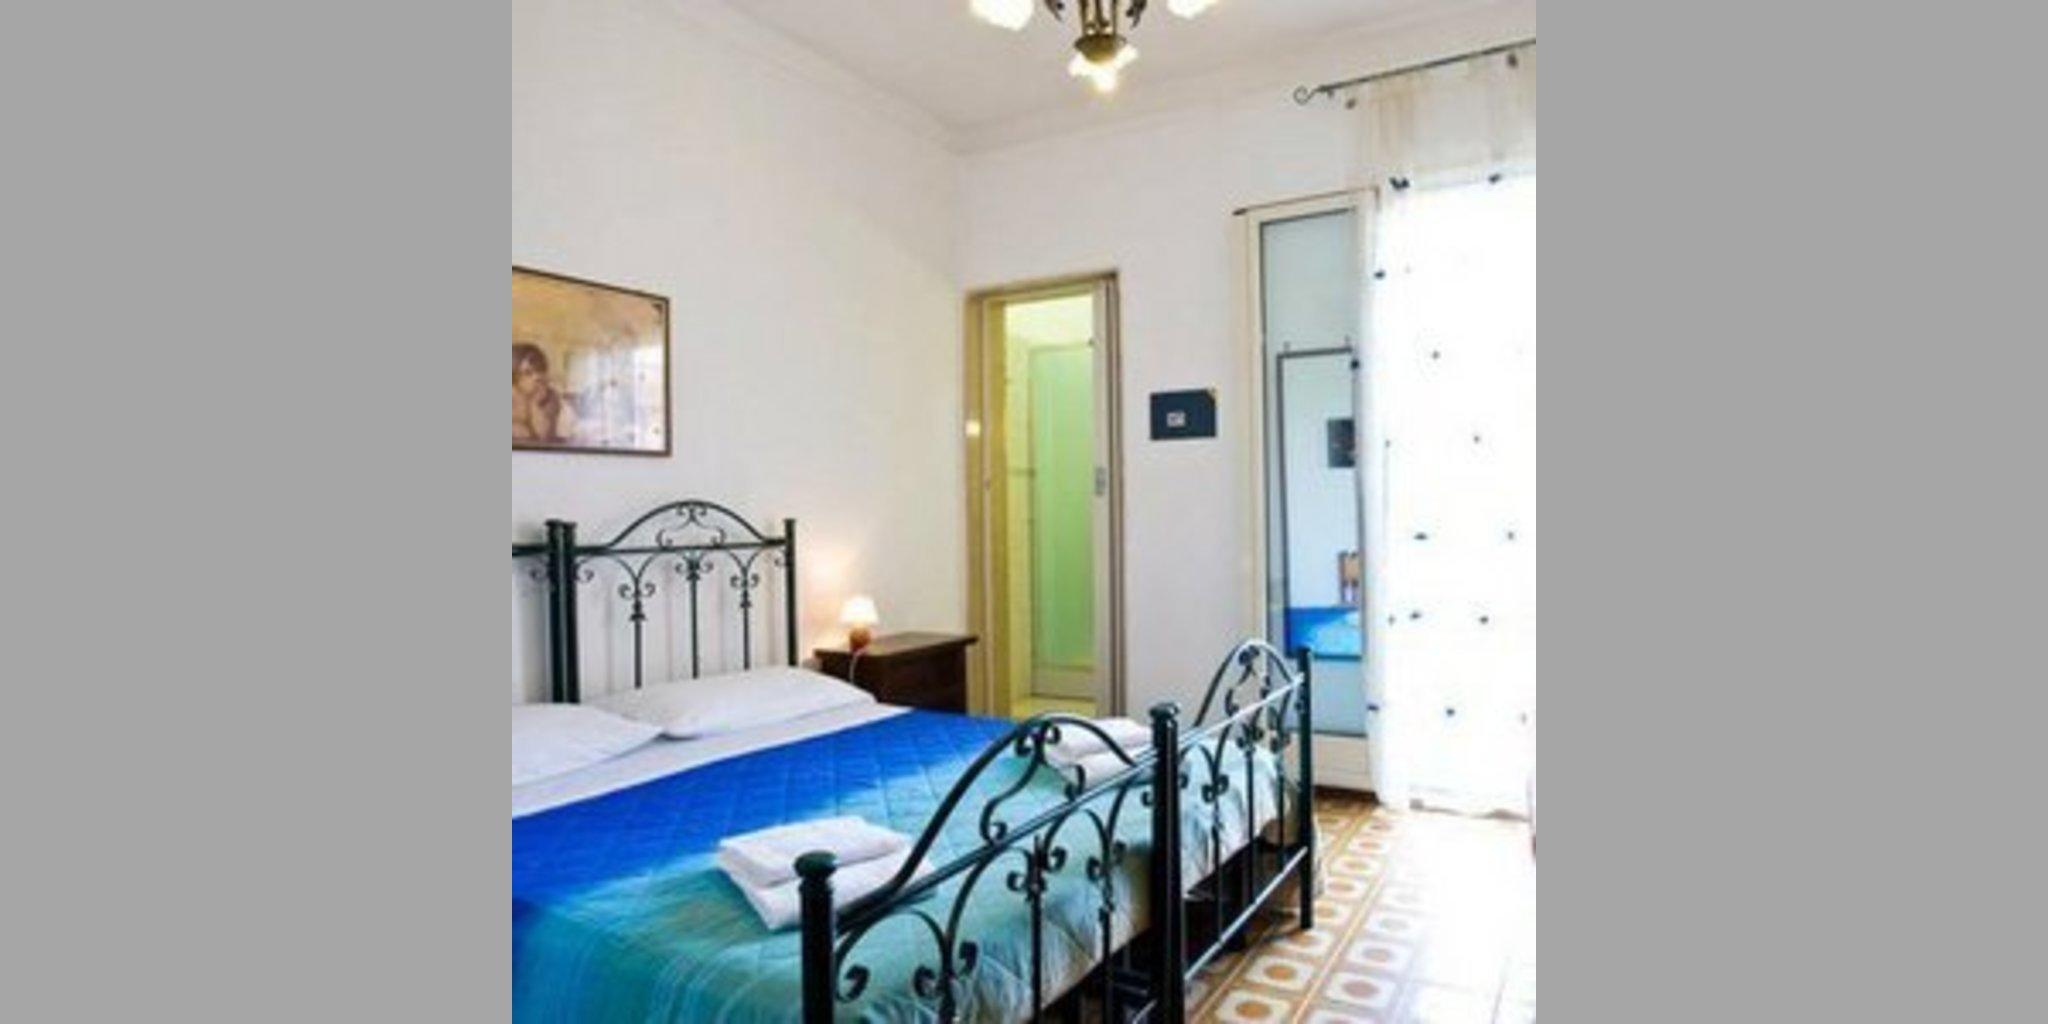 Bed & Breakfast San Donaci - San Donaci